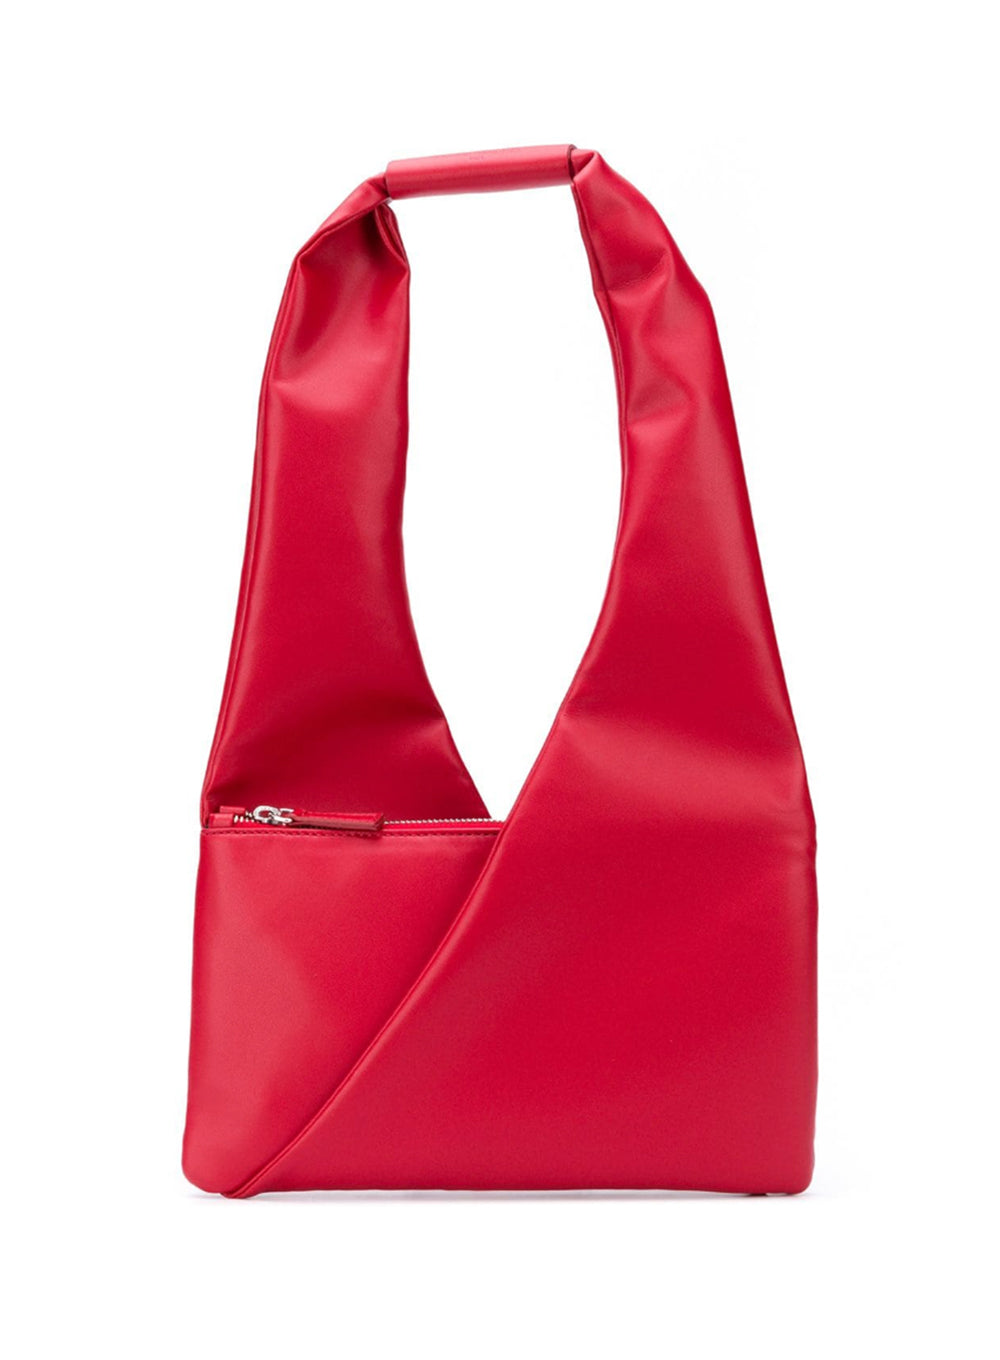 MM6 MAISON MARGIELA | Red Leather Triangle Shopper Bag